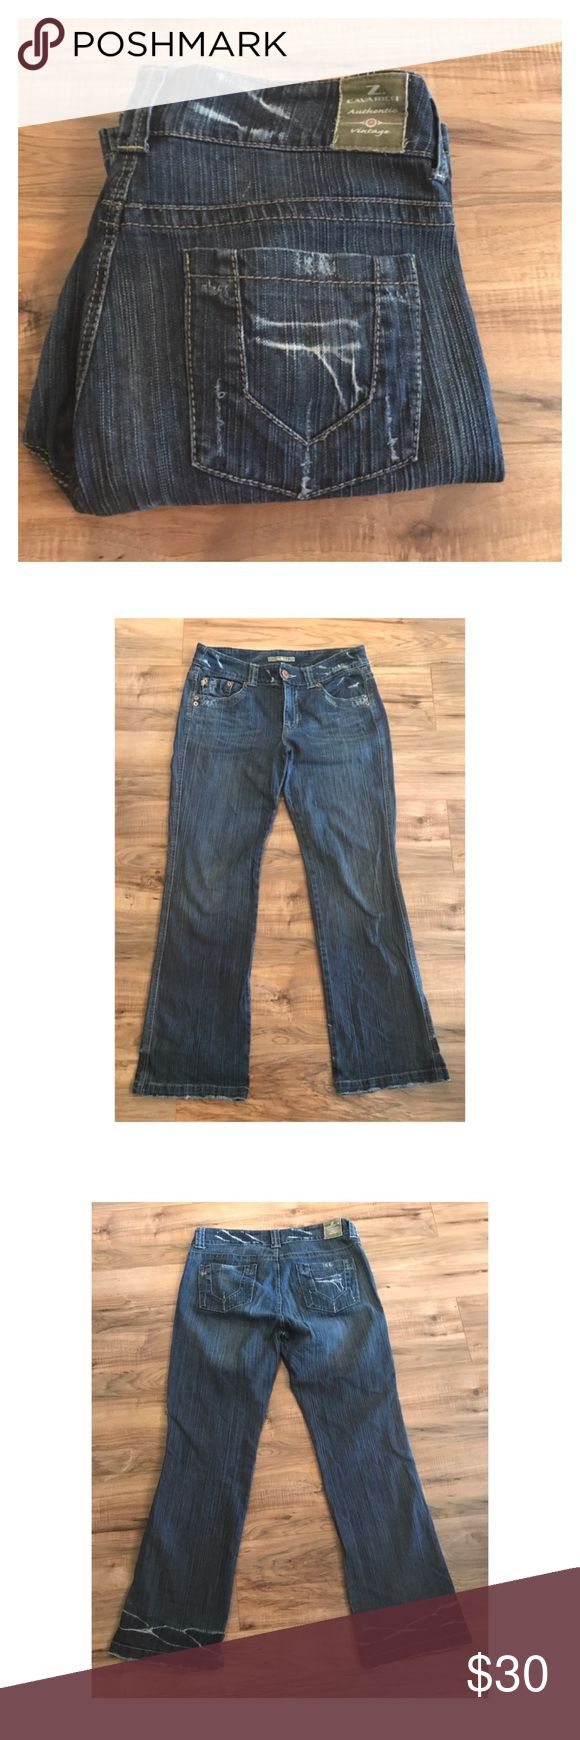 "Z. Cavaricci jeans 16 Lightly distressed Z. Cavaricci jeans size 16. Awesome jeans with flare and vintage appeal. Waist 17"", rise 10"", inseam 32"". Measurements taken flat. Z. Cavaricci Jeans Flare & Wide Leg"